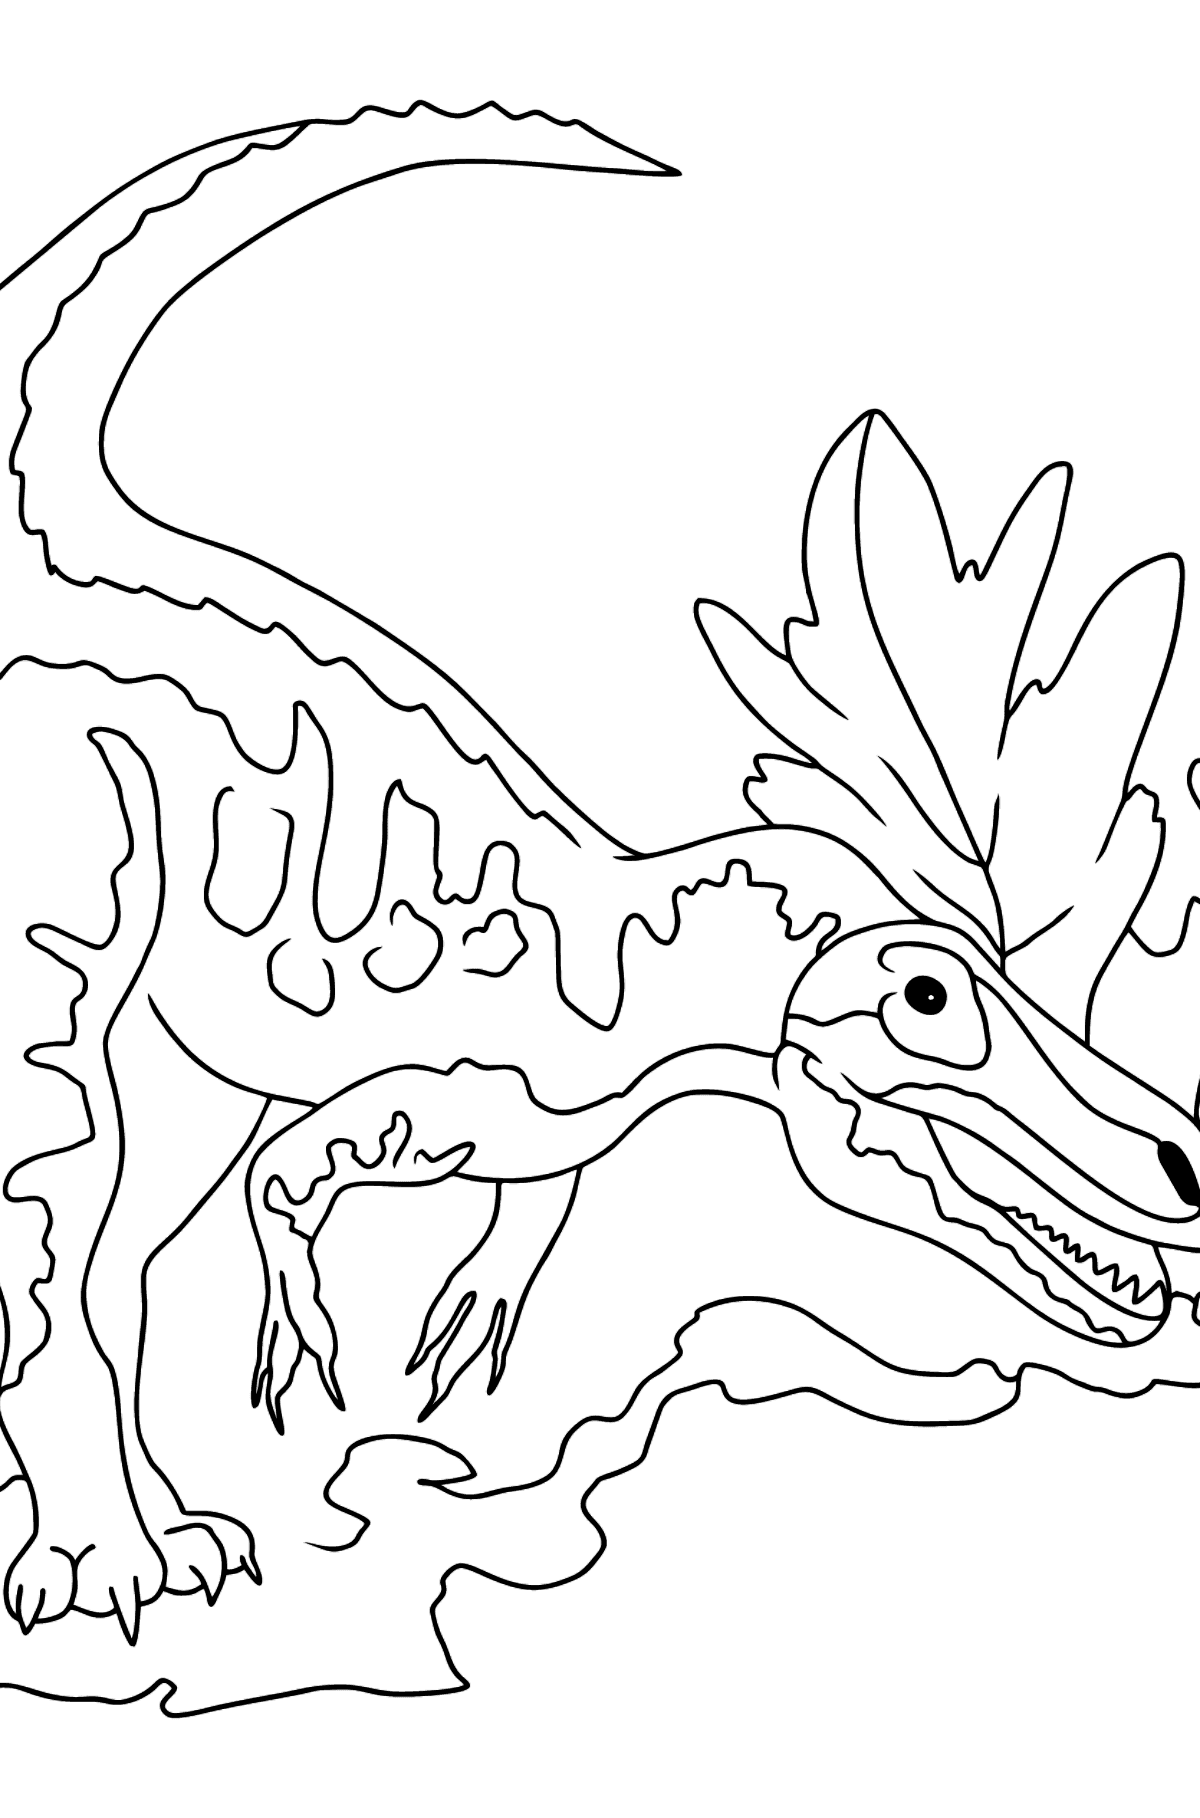 Allosaurus picture - Coloring Pages for Kids